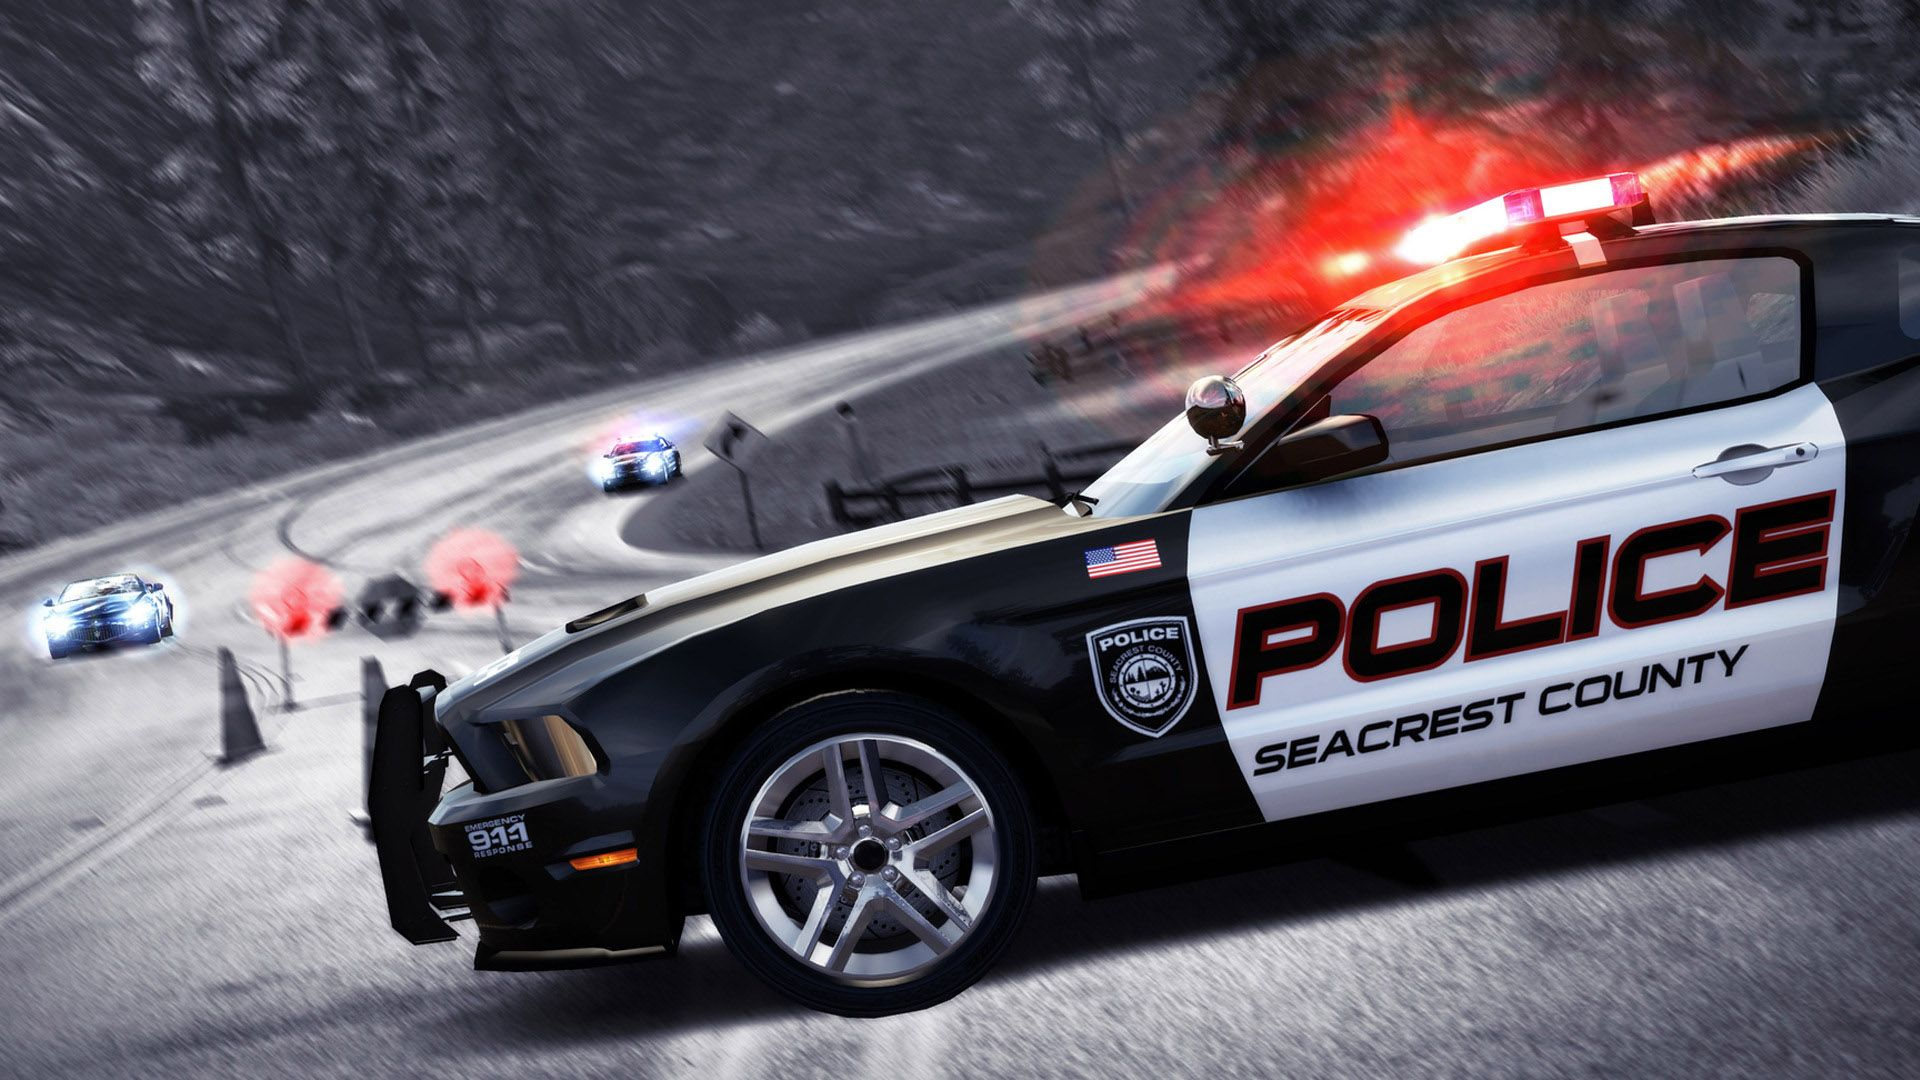 Police-Full-HD-Background-http-and-backgrounds-net-police-full-hd-background-wallpaper-wpc9008600